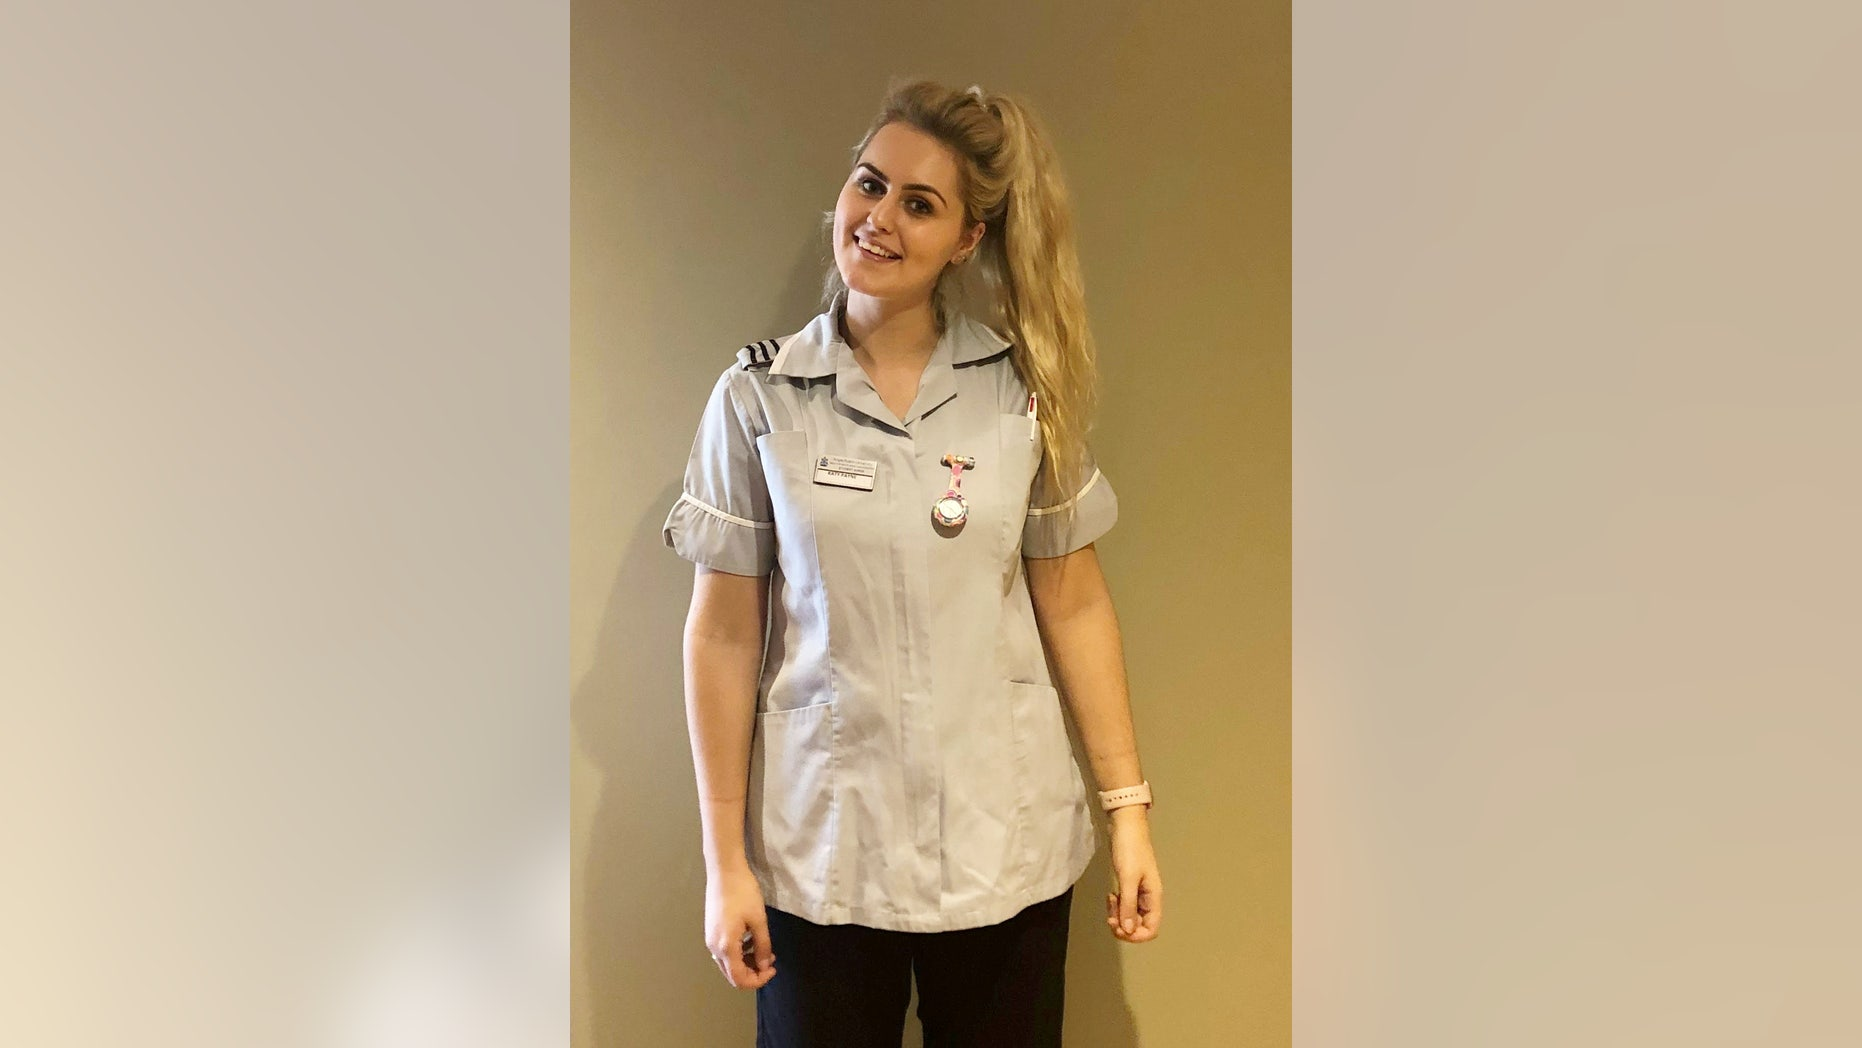 Katy Payne, 20, in her nurses outfit, is now working with some of the staff who helped care for her as a child.